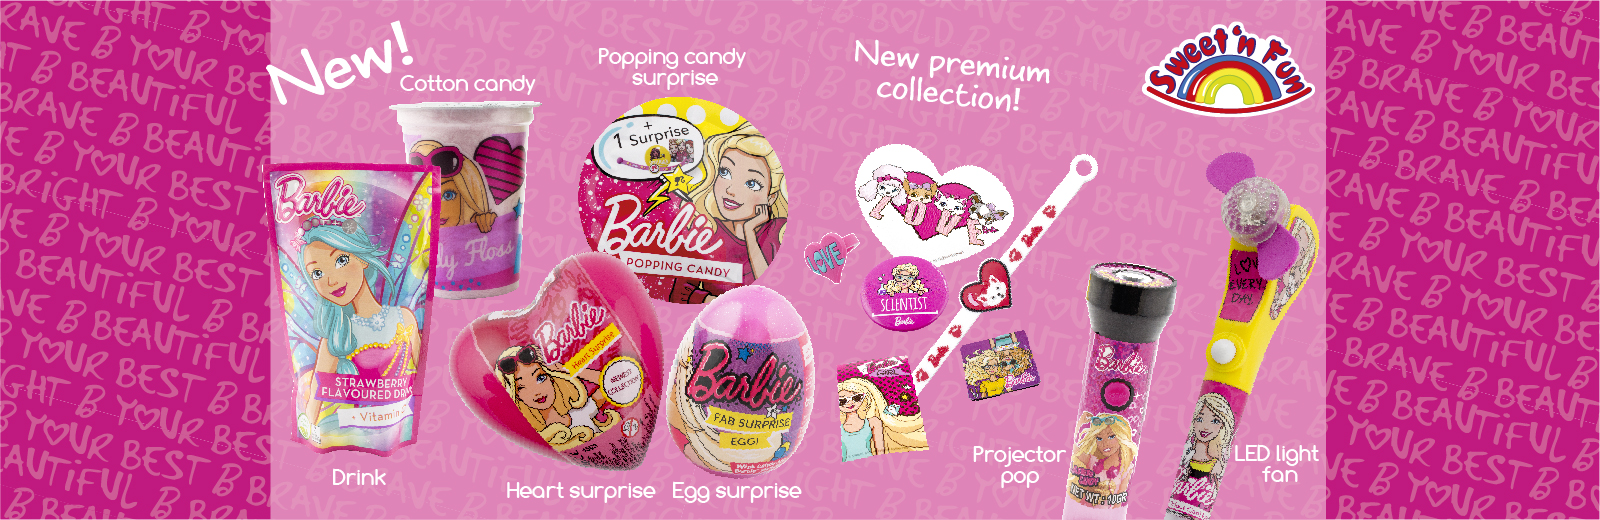 slide /fotky26304/slider/banner-barbie-new-01.jpg